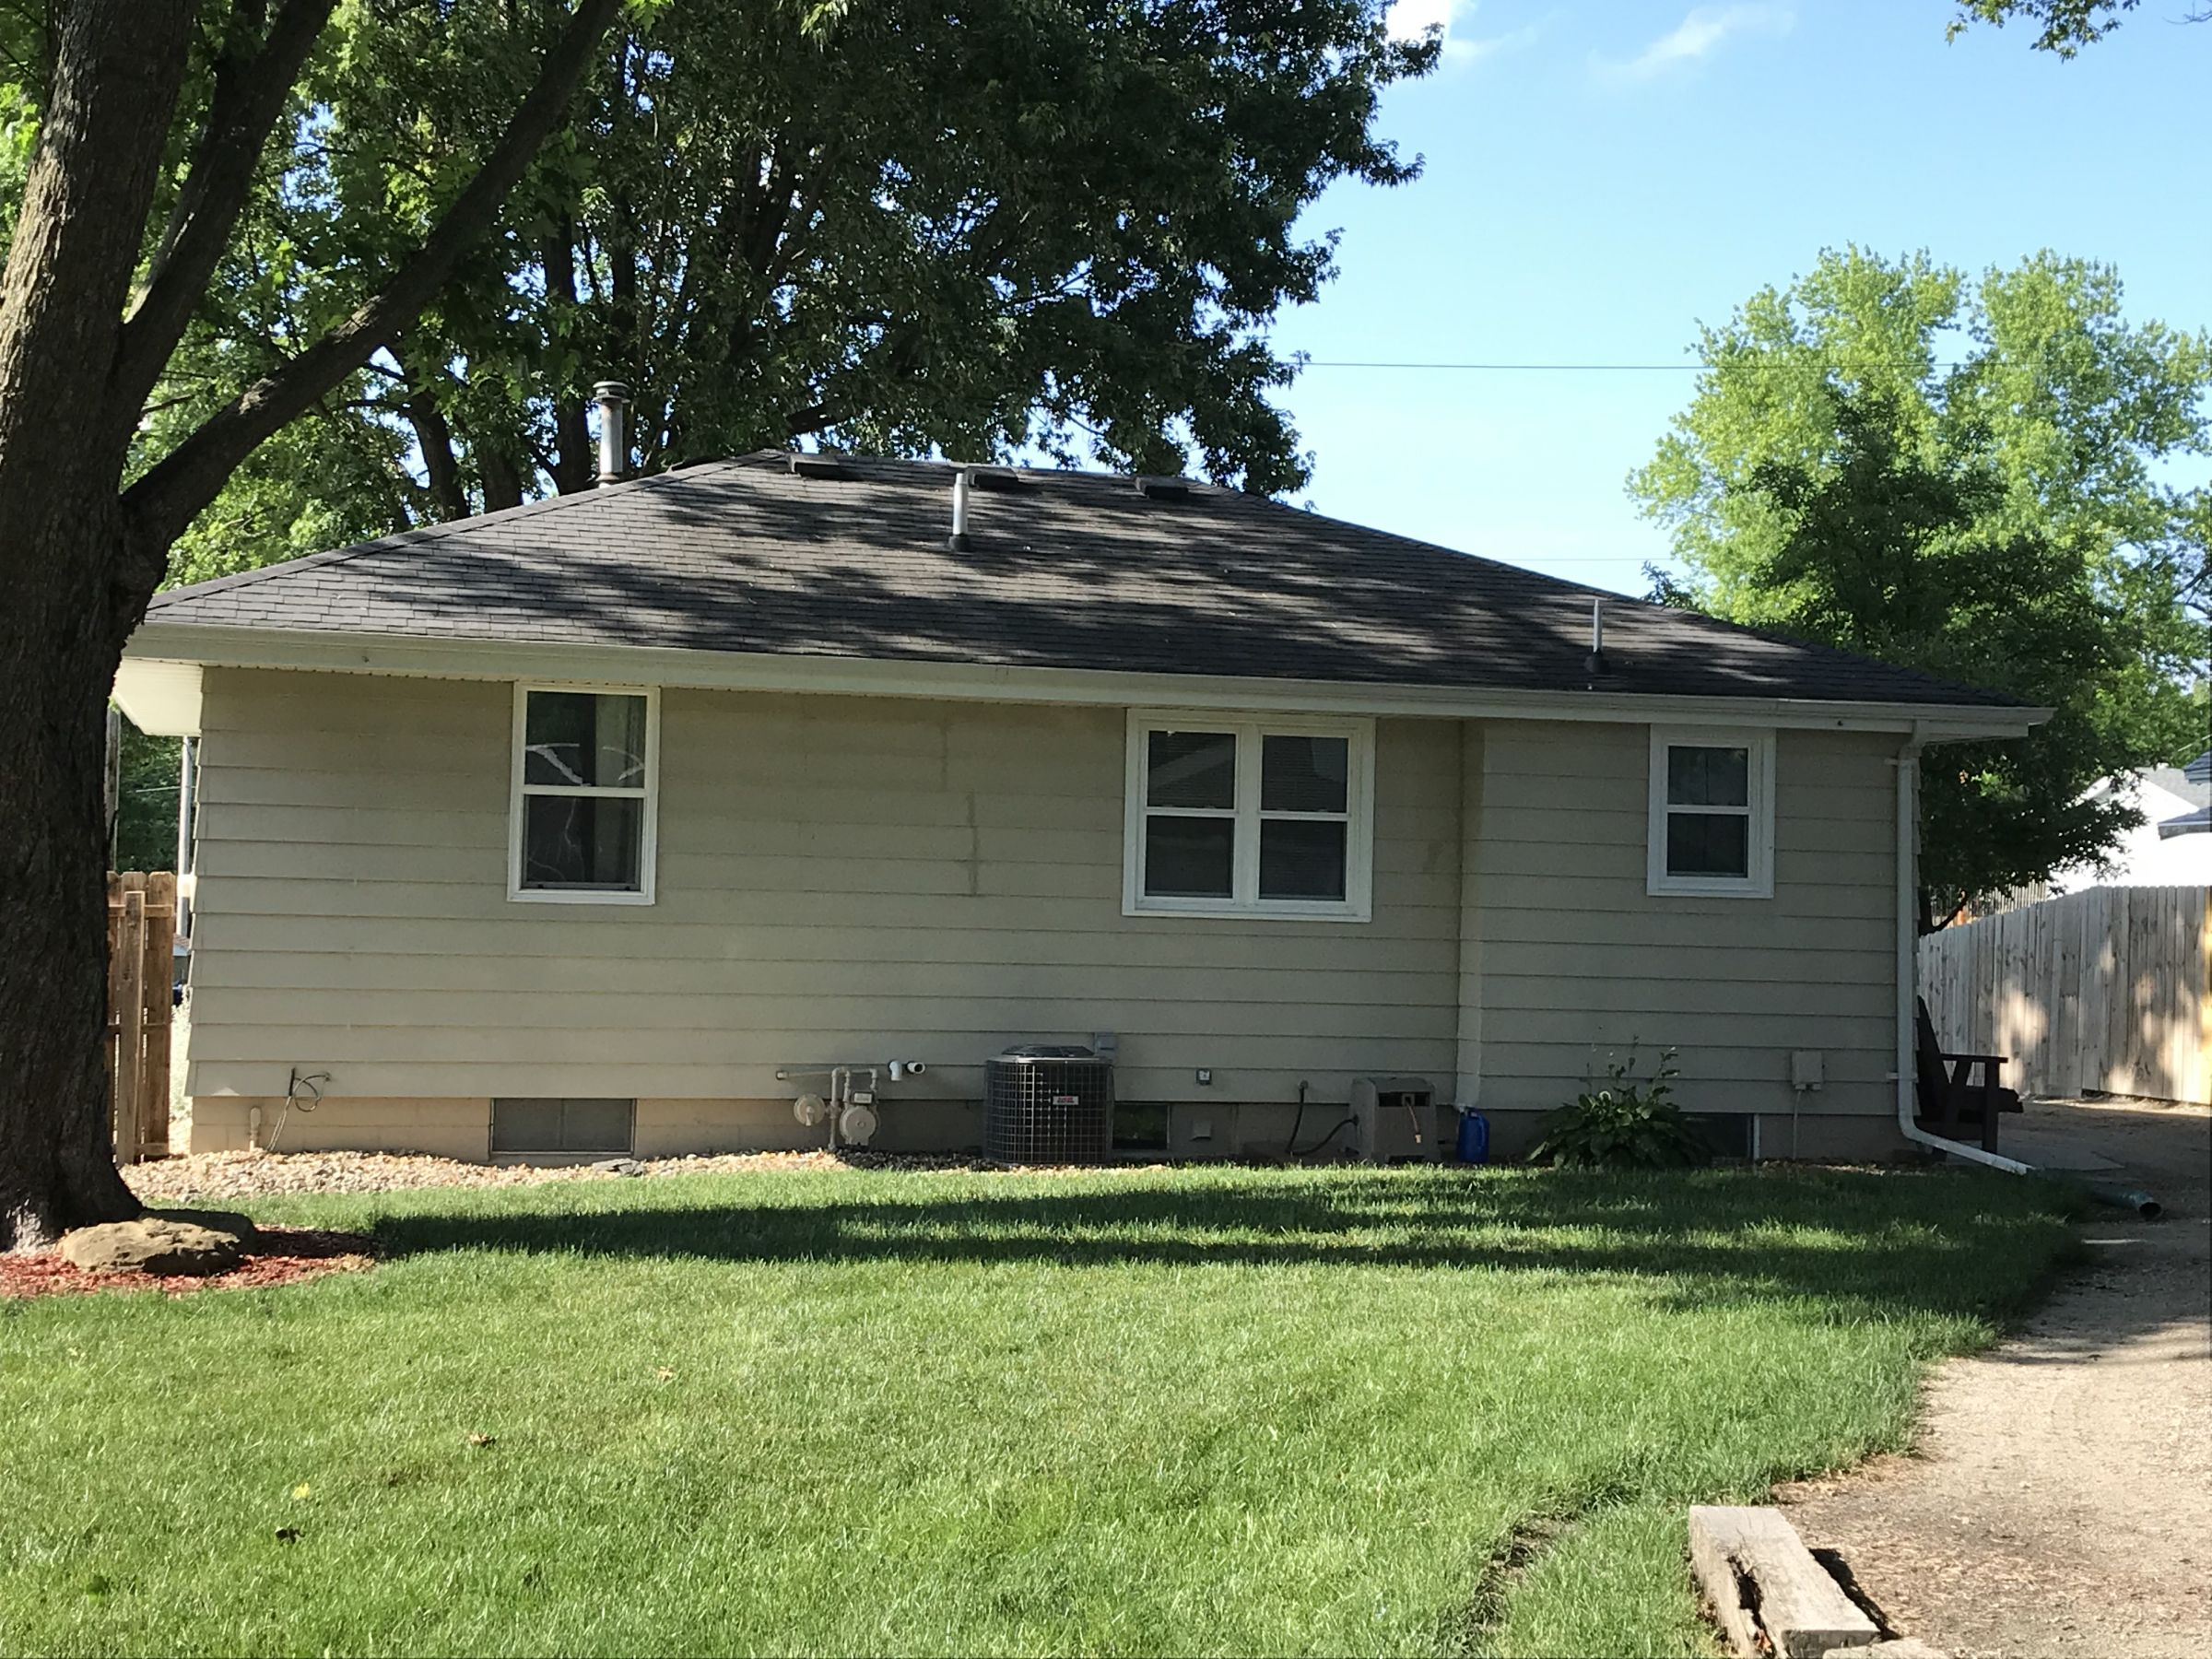 14564-811-w-1st-ave-indianola-50125-3-2019-06-21-002719.JPG